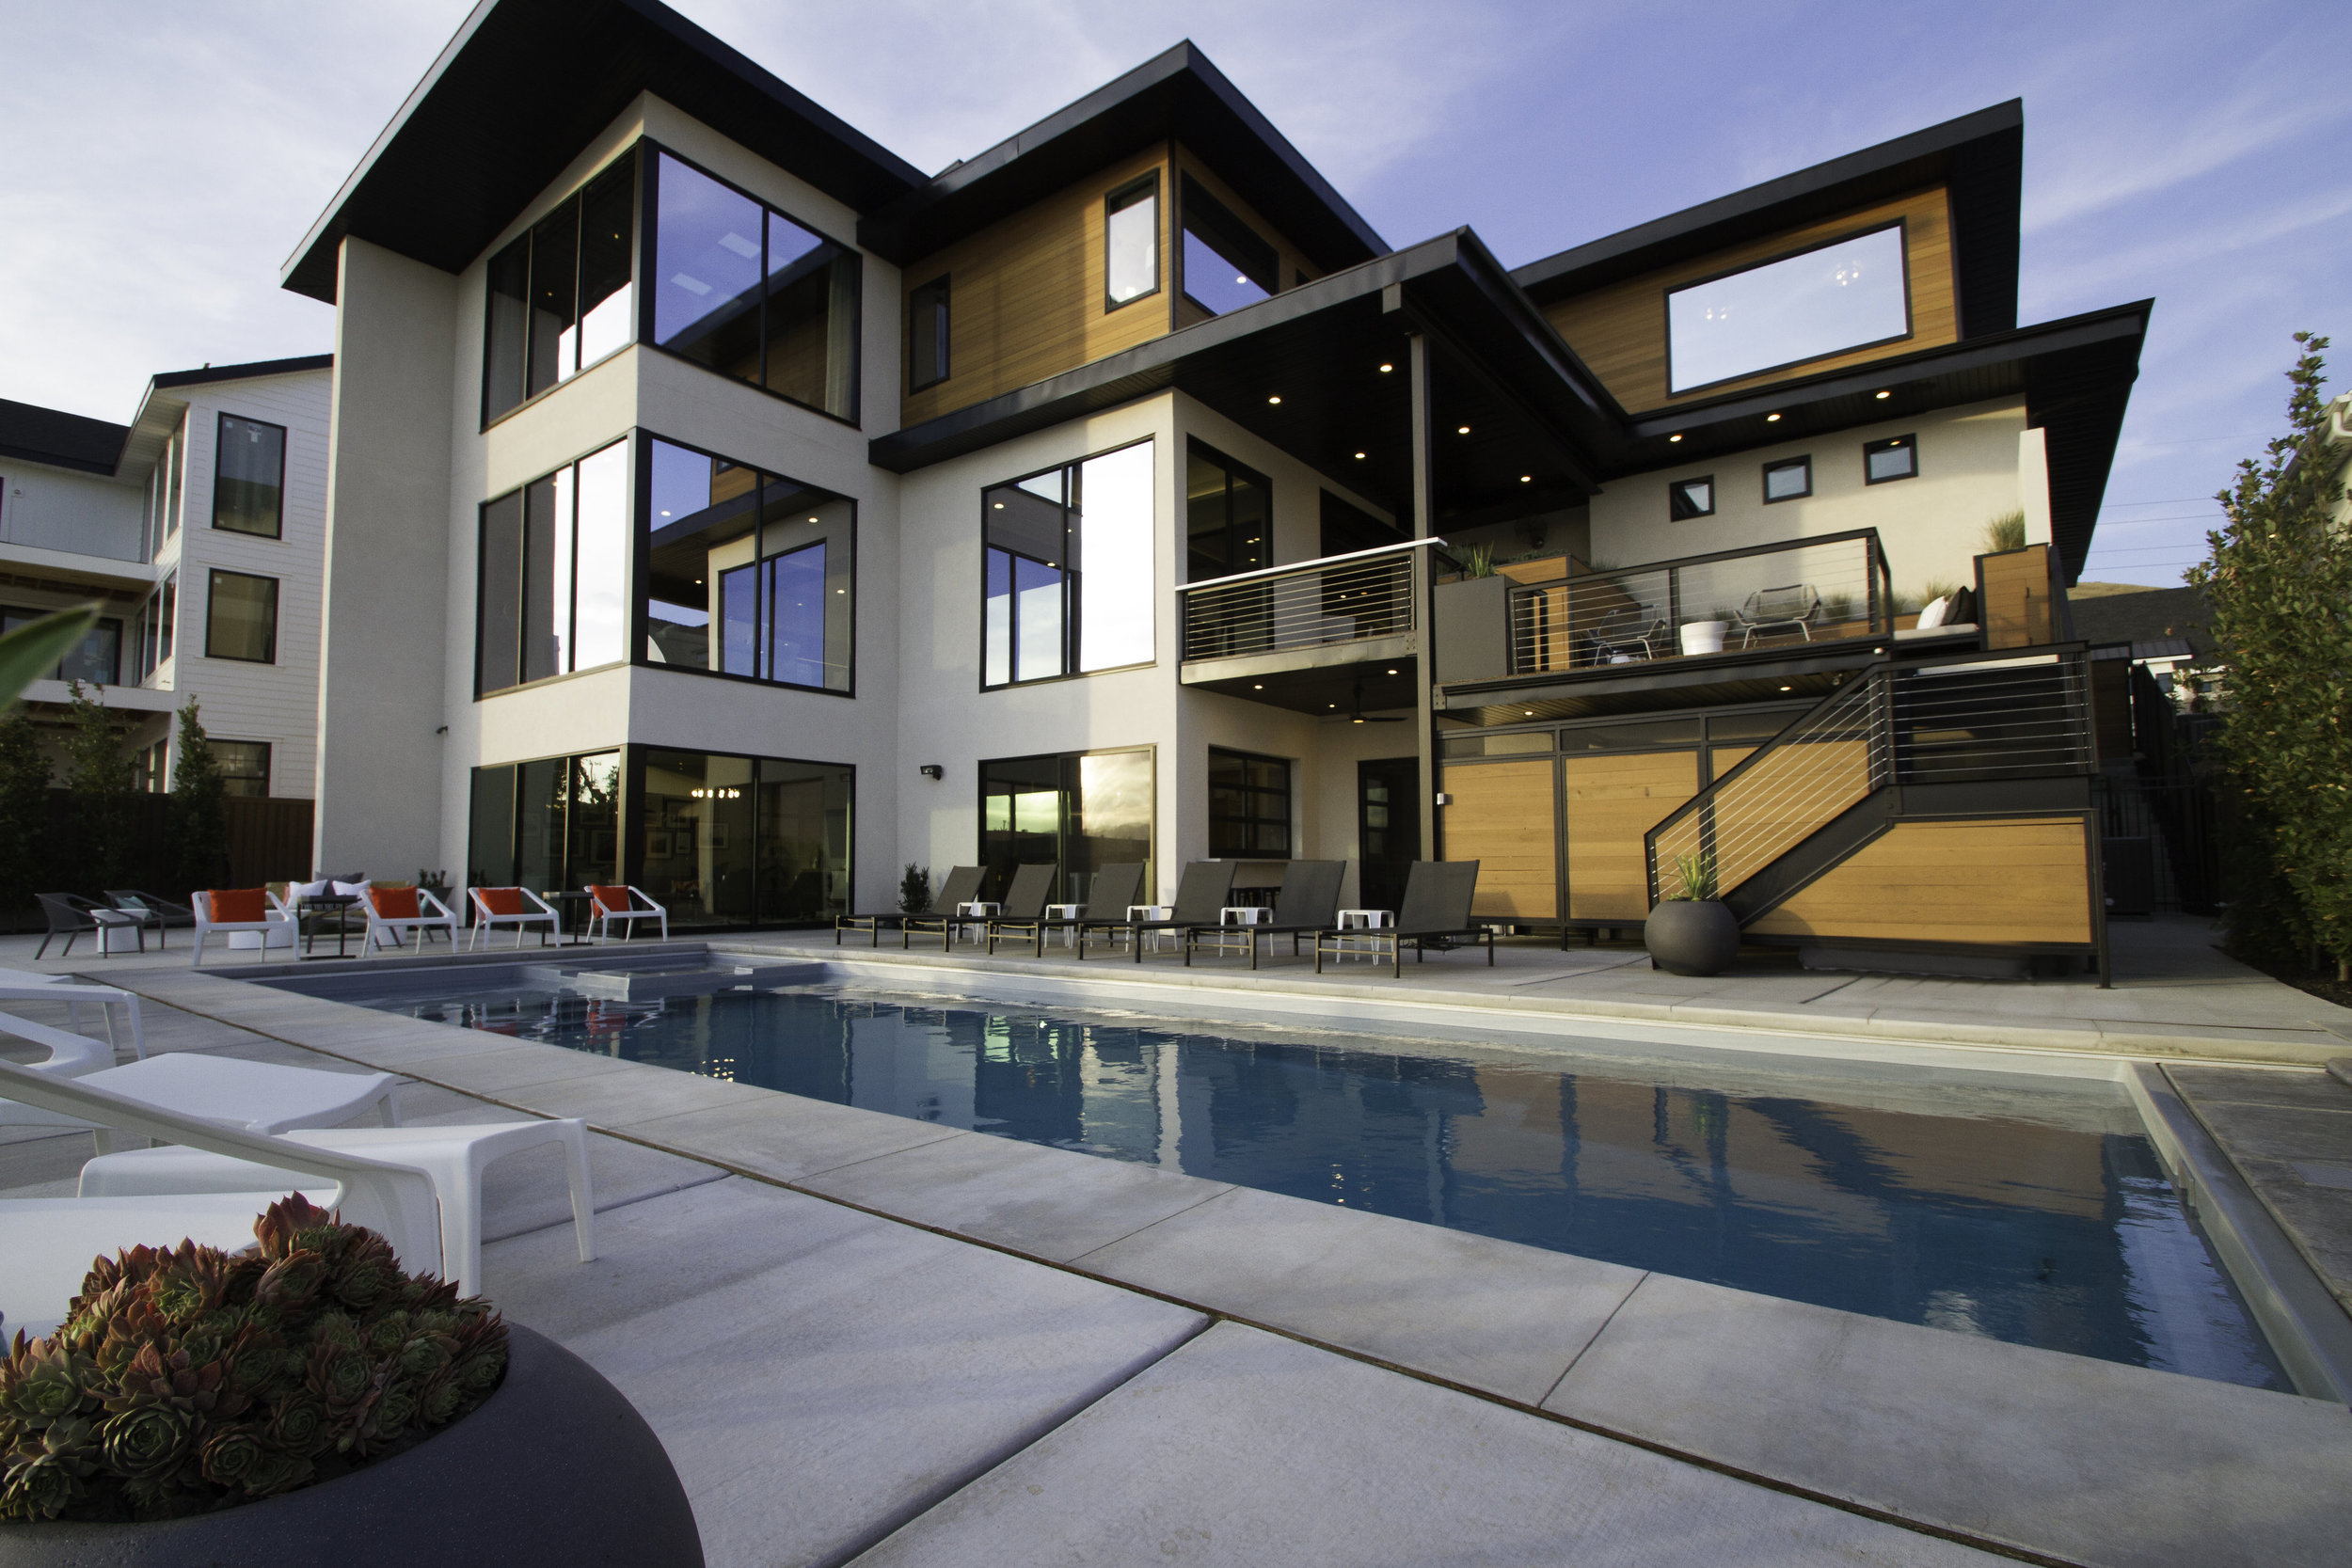 ezra lee design + build : utah modern custom home builder